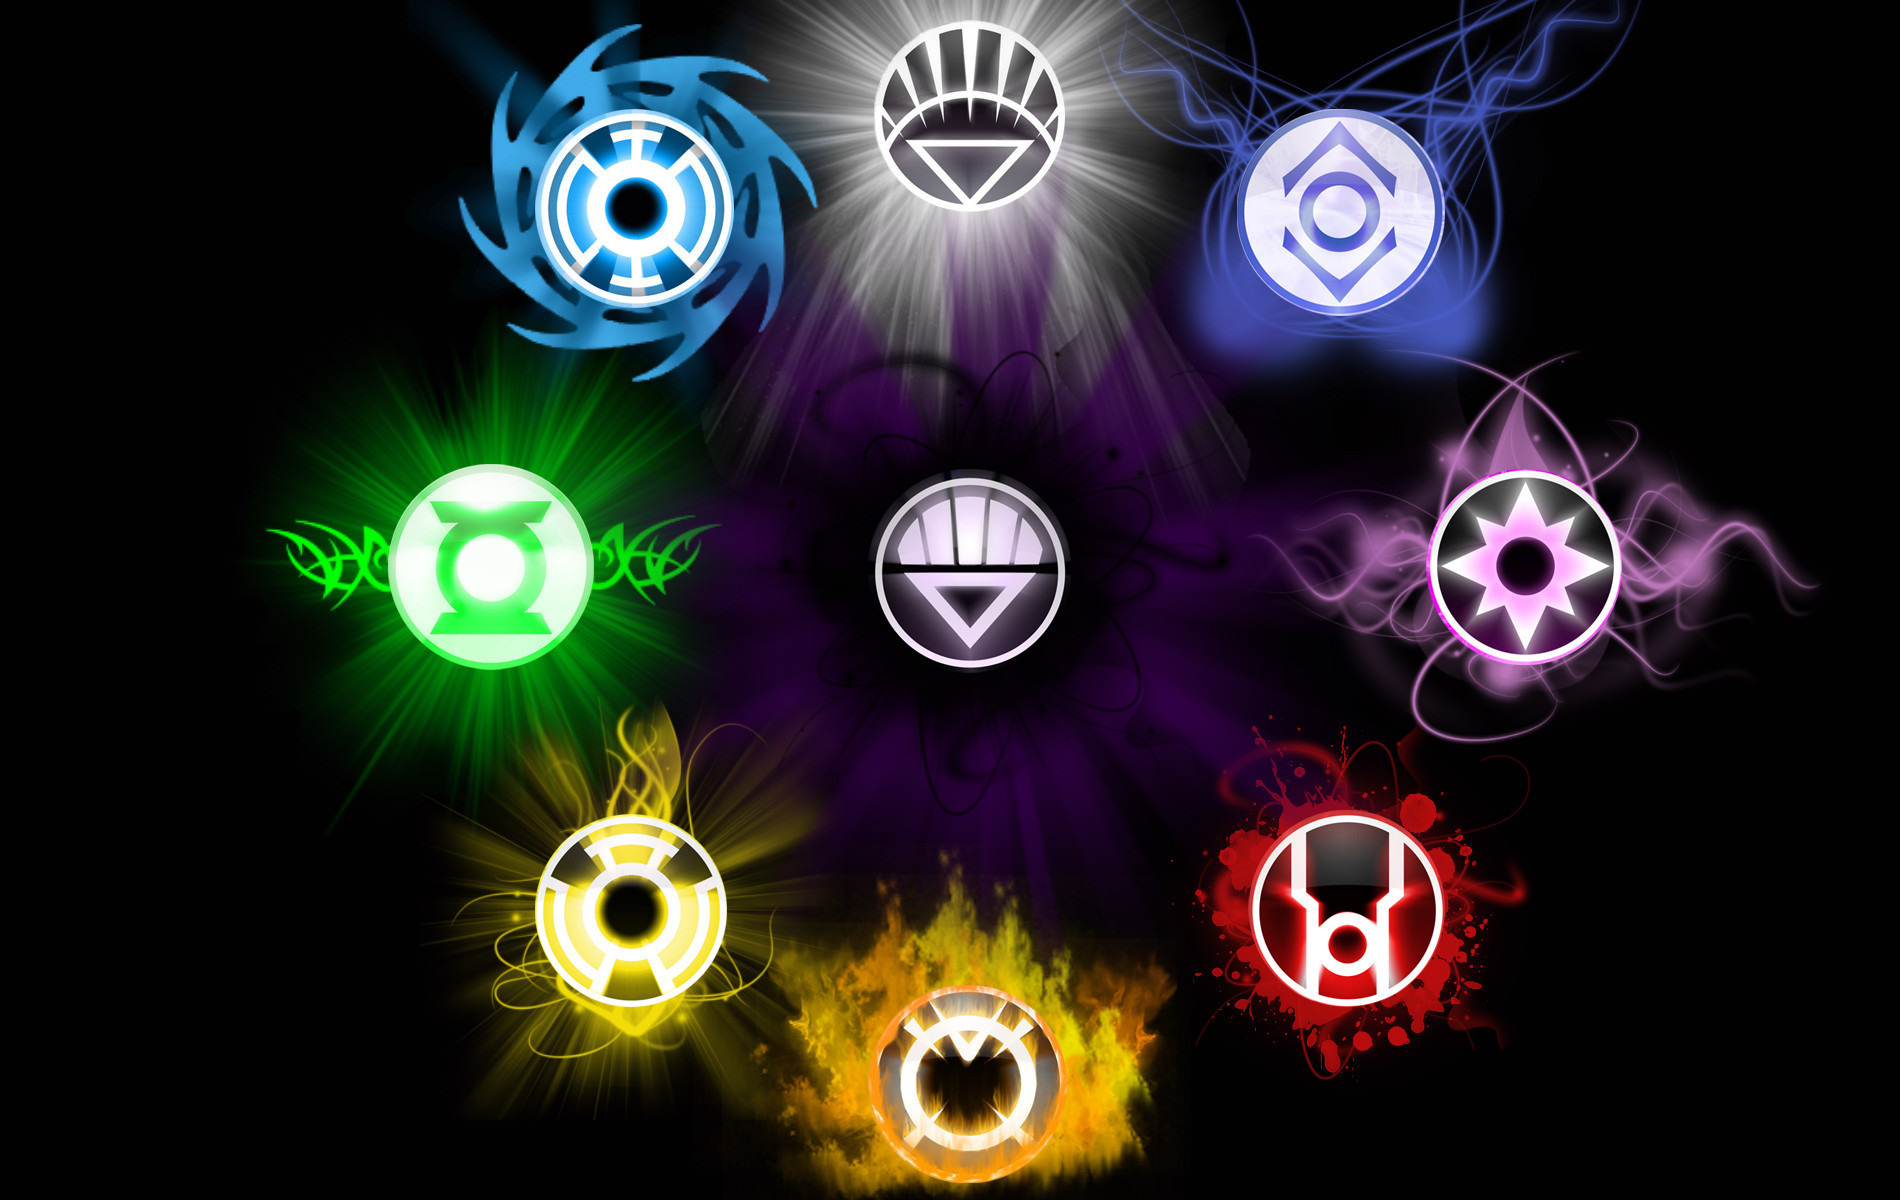 Green Lantern Corps Wallpaper and Background Image ...